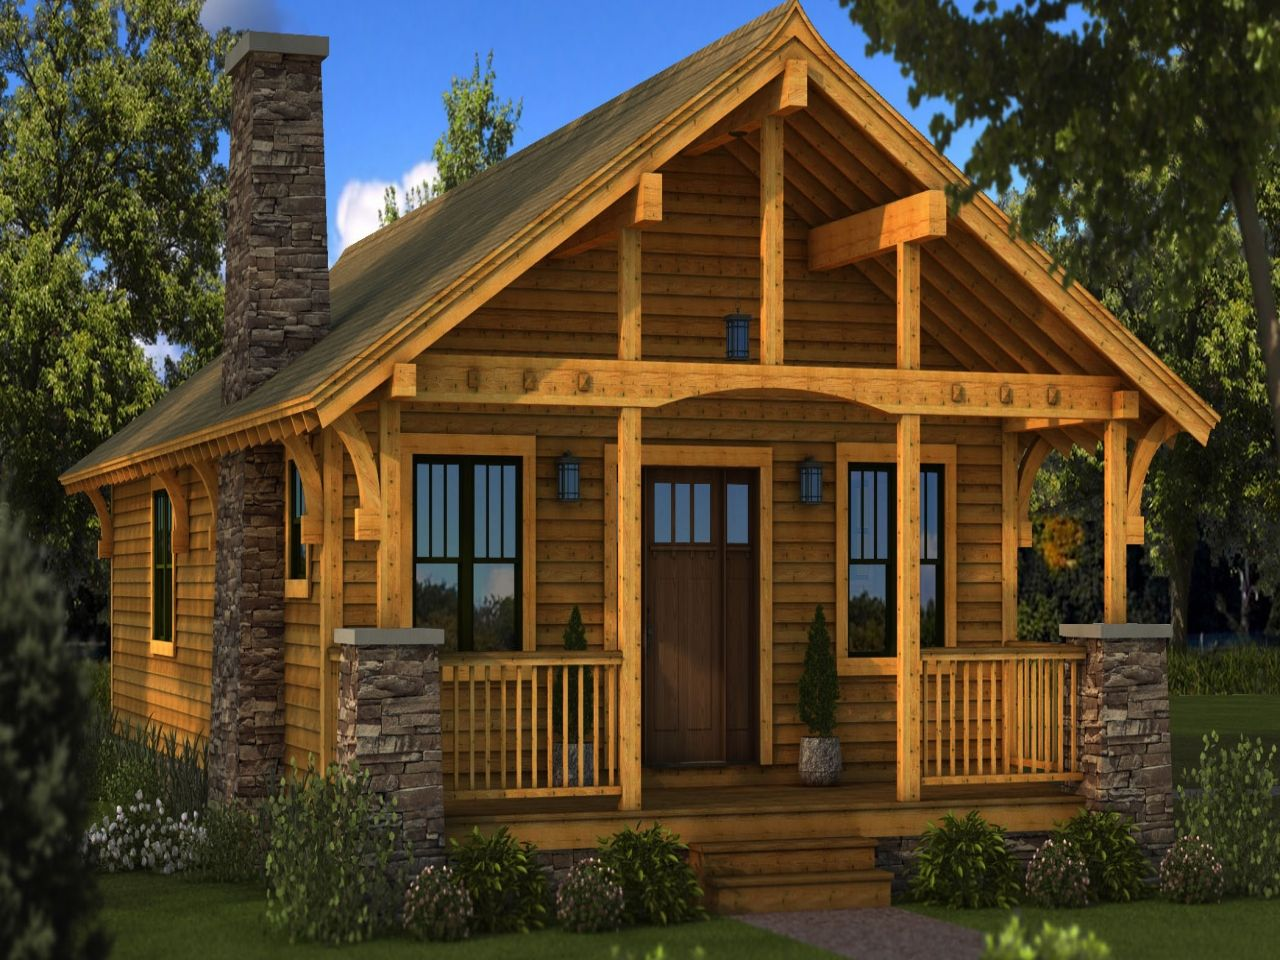 Small Log Cabin Homes Plans One Story Cabin Plans Small Cabins Pinterest